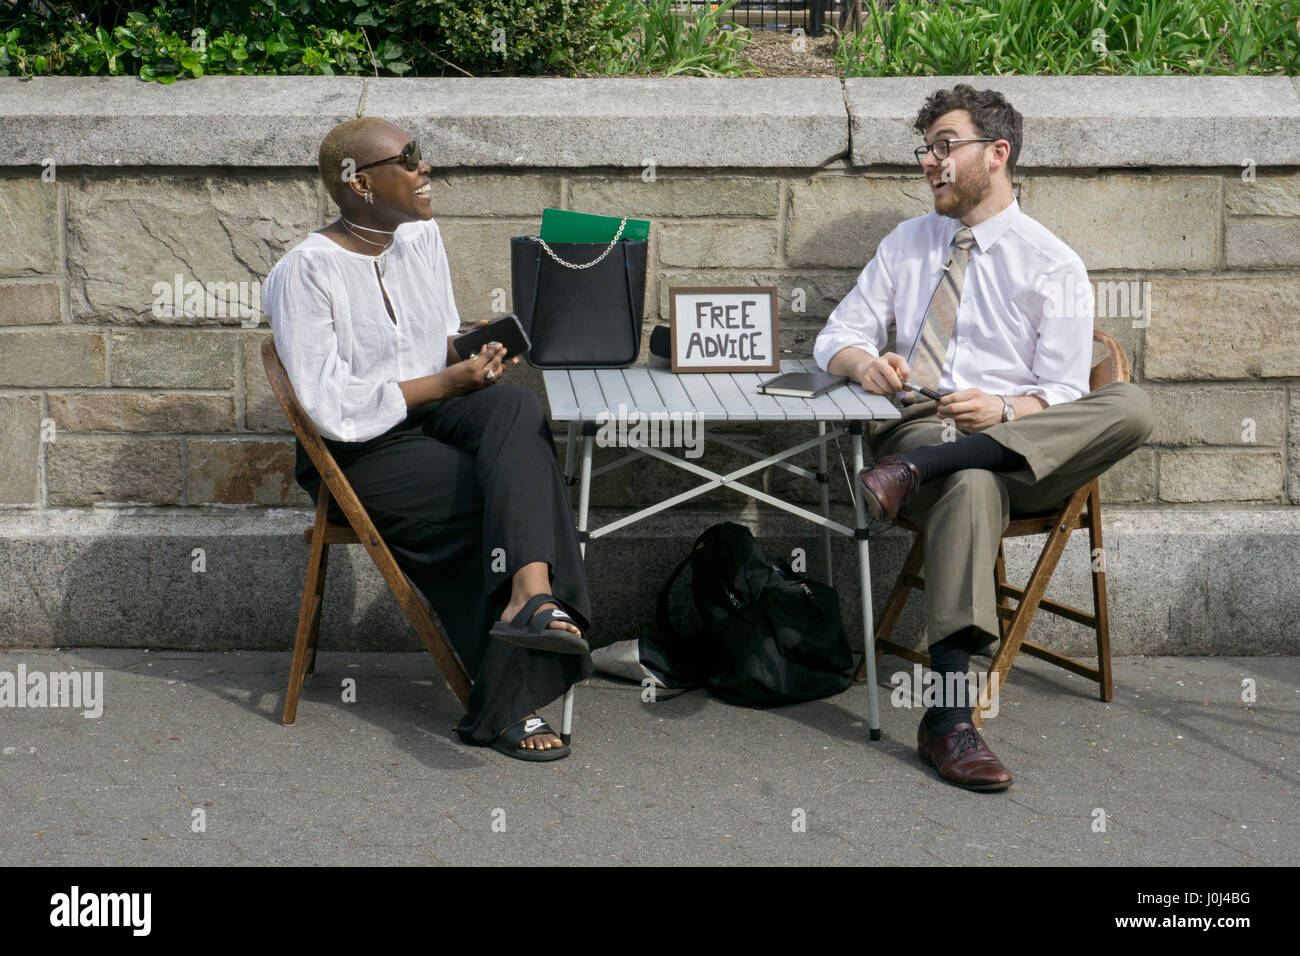 A young man giving free advice to a woman in Union Square Park in Manhattan, New York City. - Stock Image